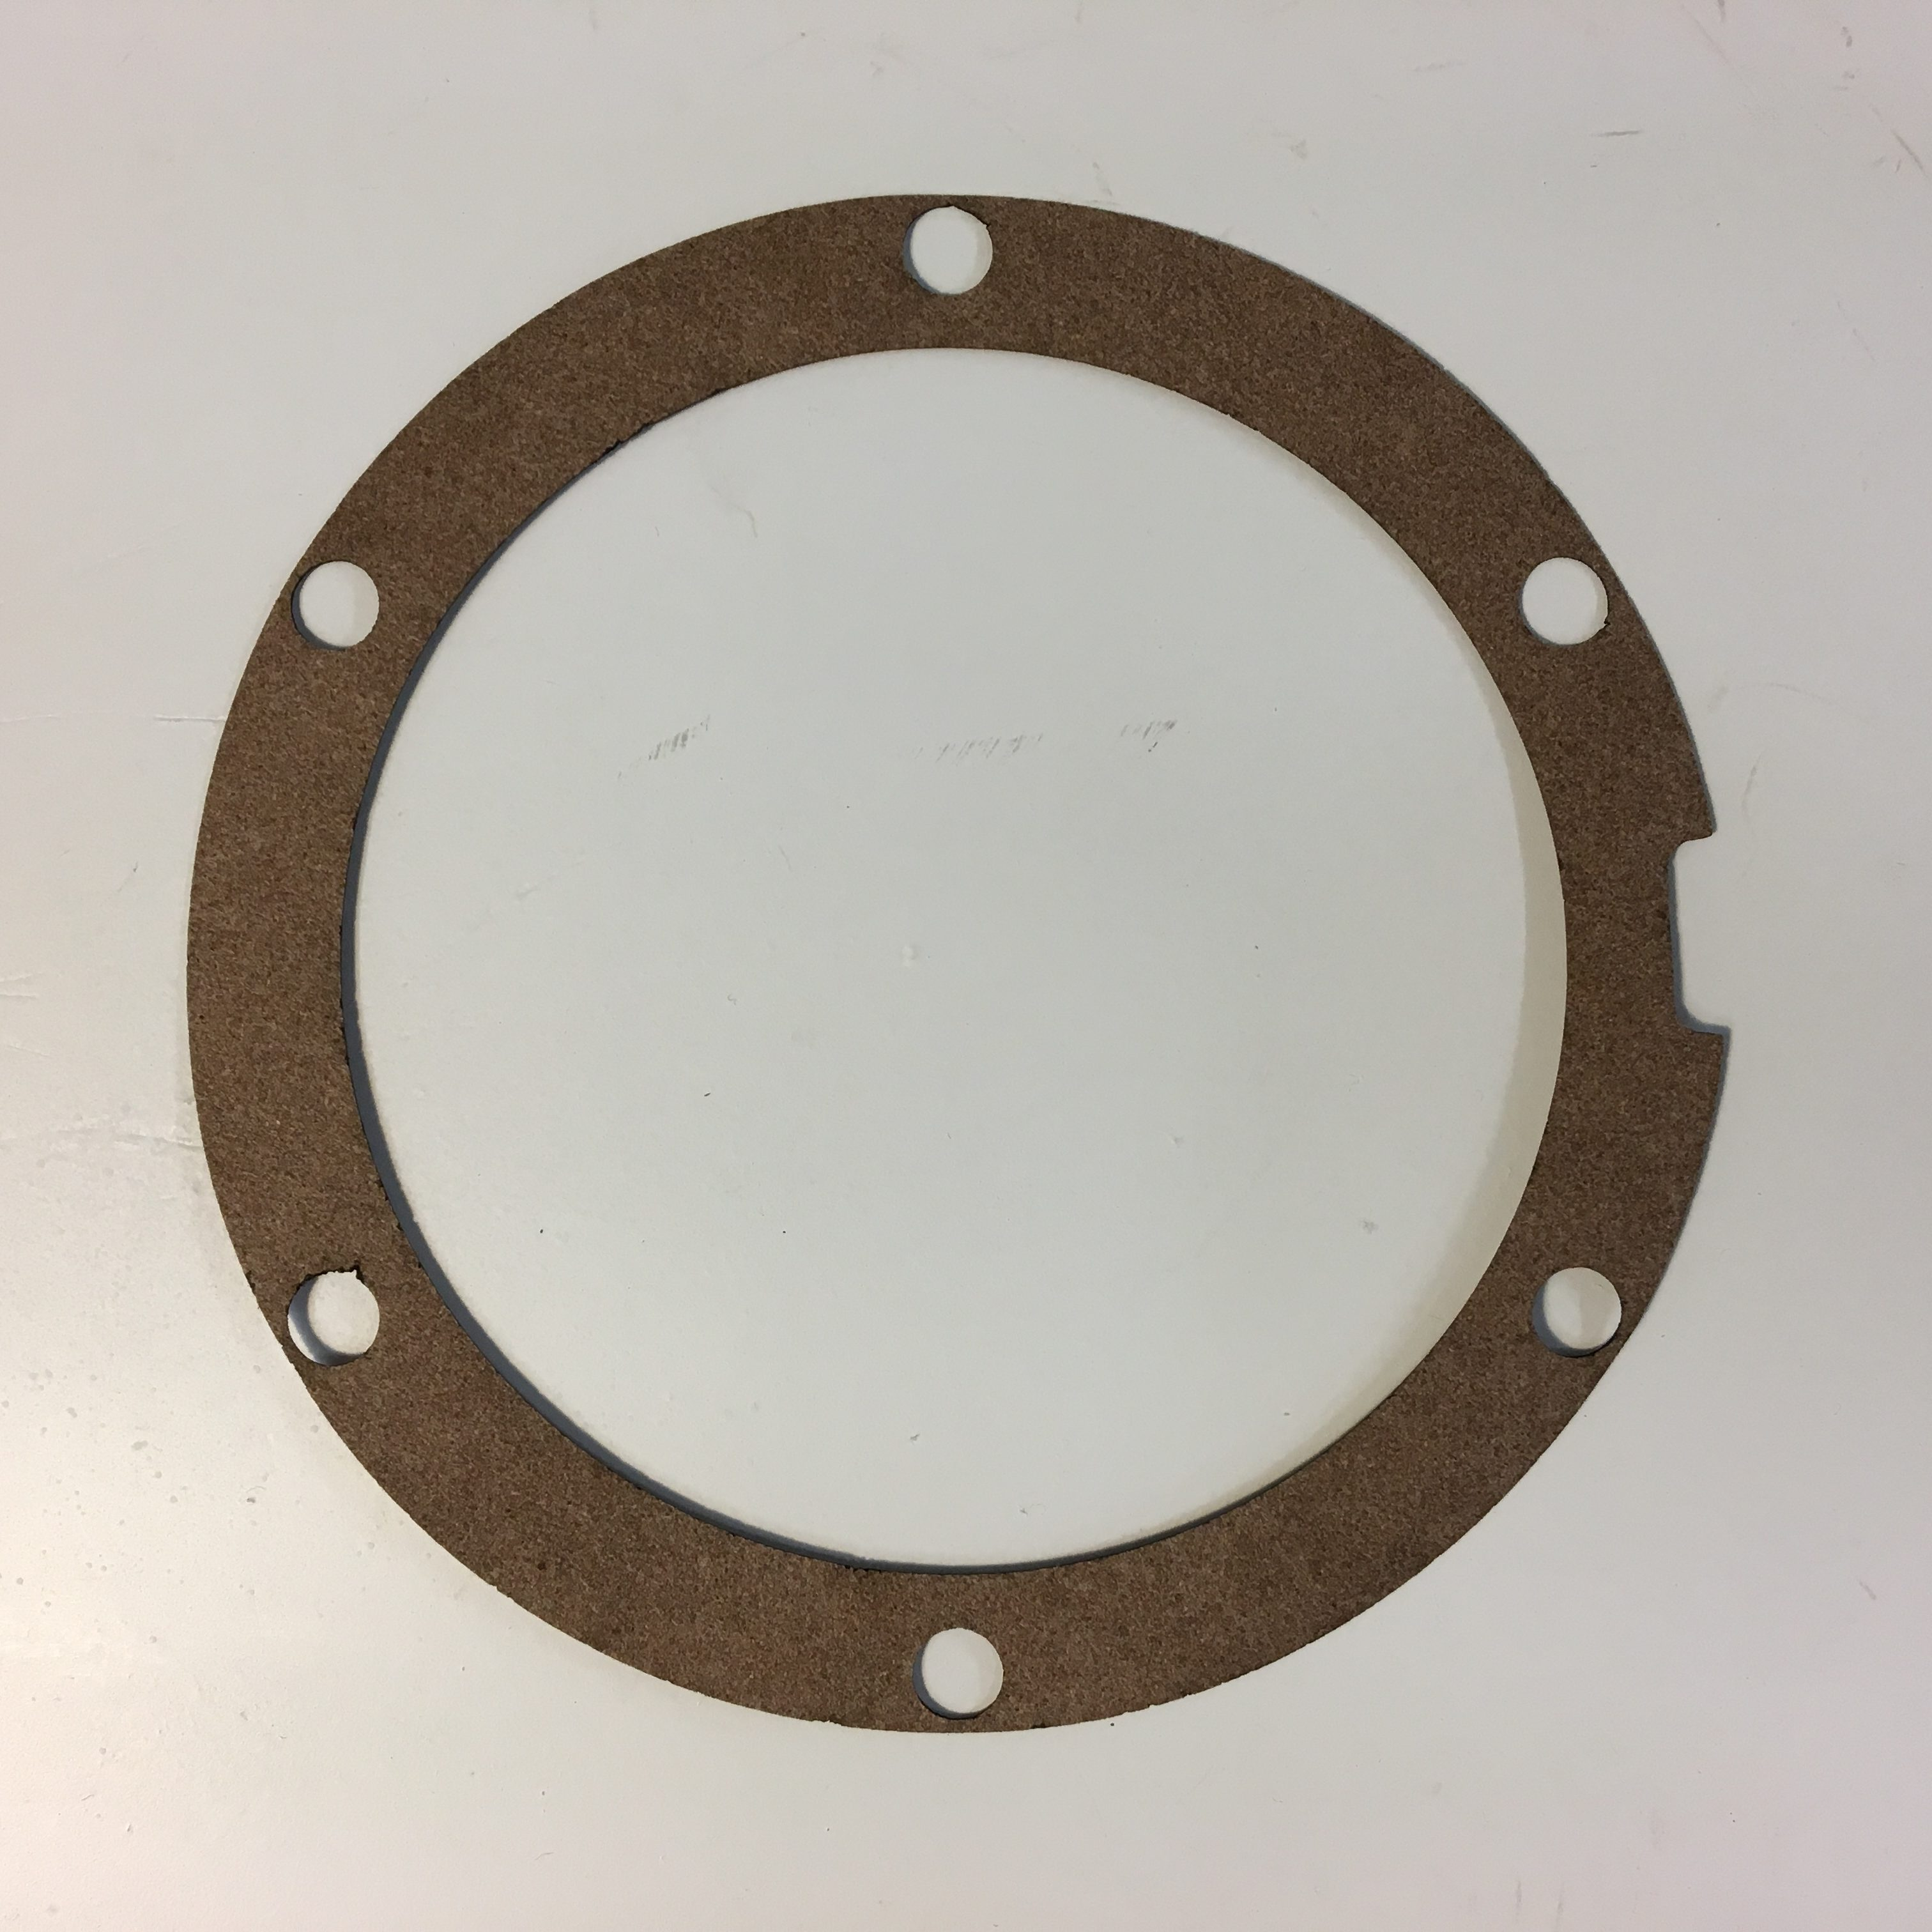 DELCO REMI HORN GASKET-DODGE